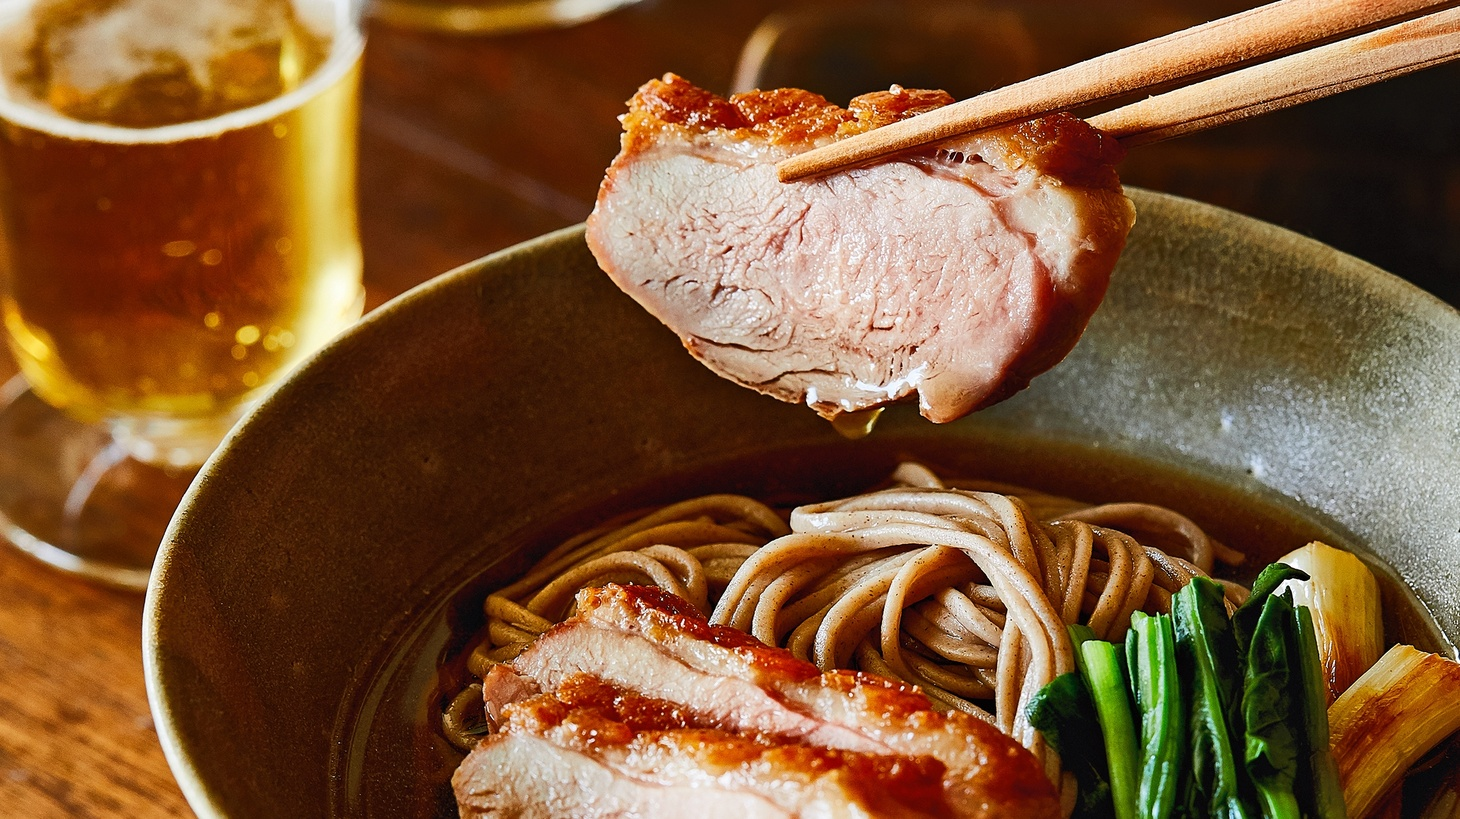 Gaijin Duck Soba, excerpted from The Gaijin Cookbook: Japanese Recipes from a Chef, Father, Eater, and Lifelong Outsider© 2019 by Ivan Orkin and Chris Yang.